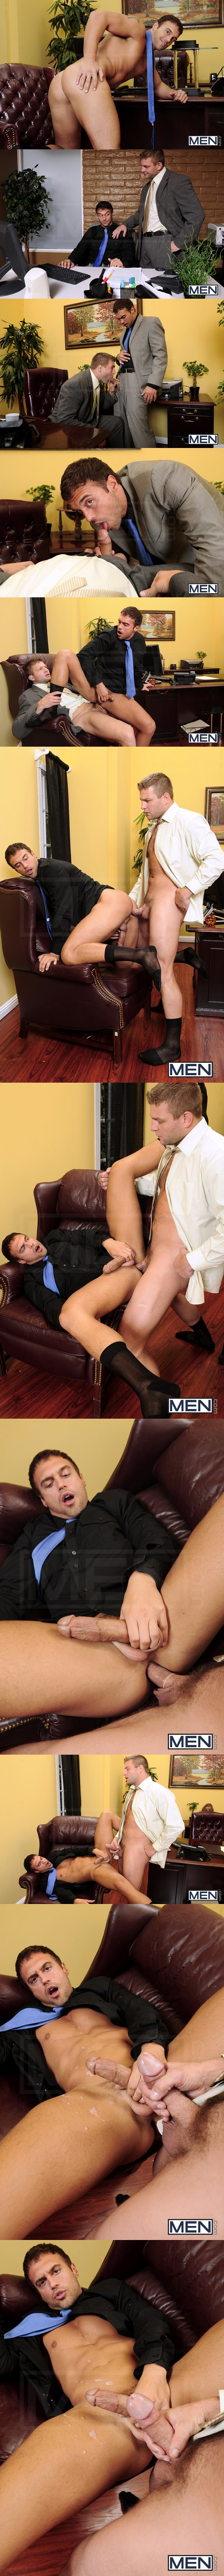 Rough Colby Jansen Fucks the load out of Rocco Reed at Thegayoffice 01